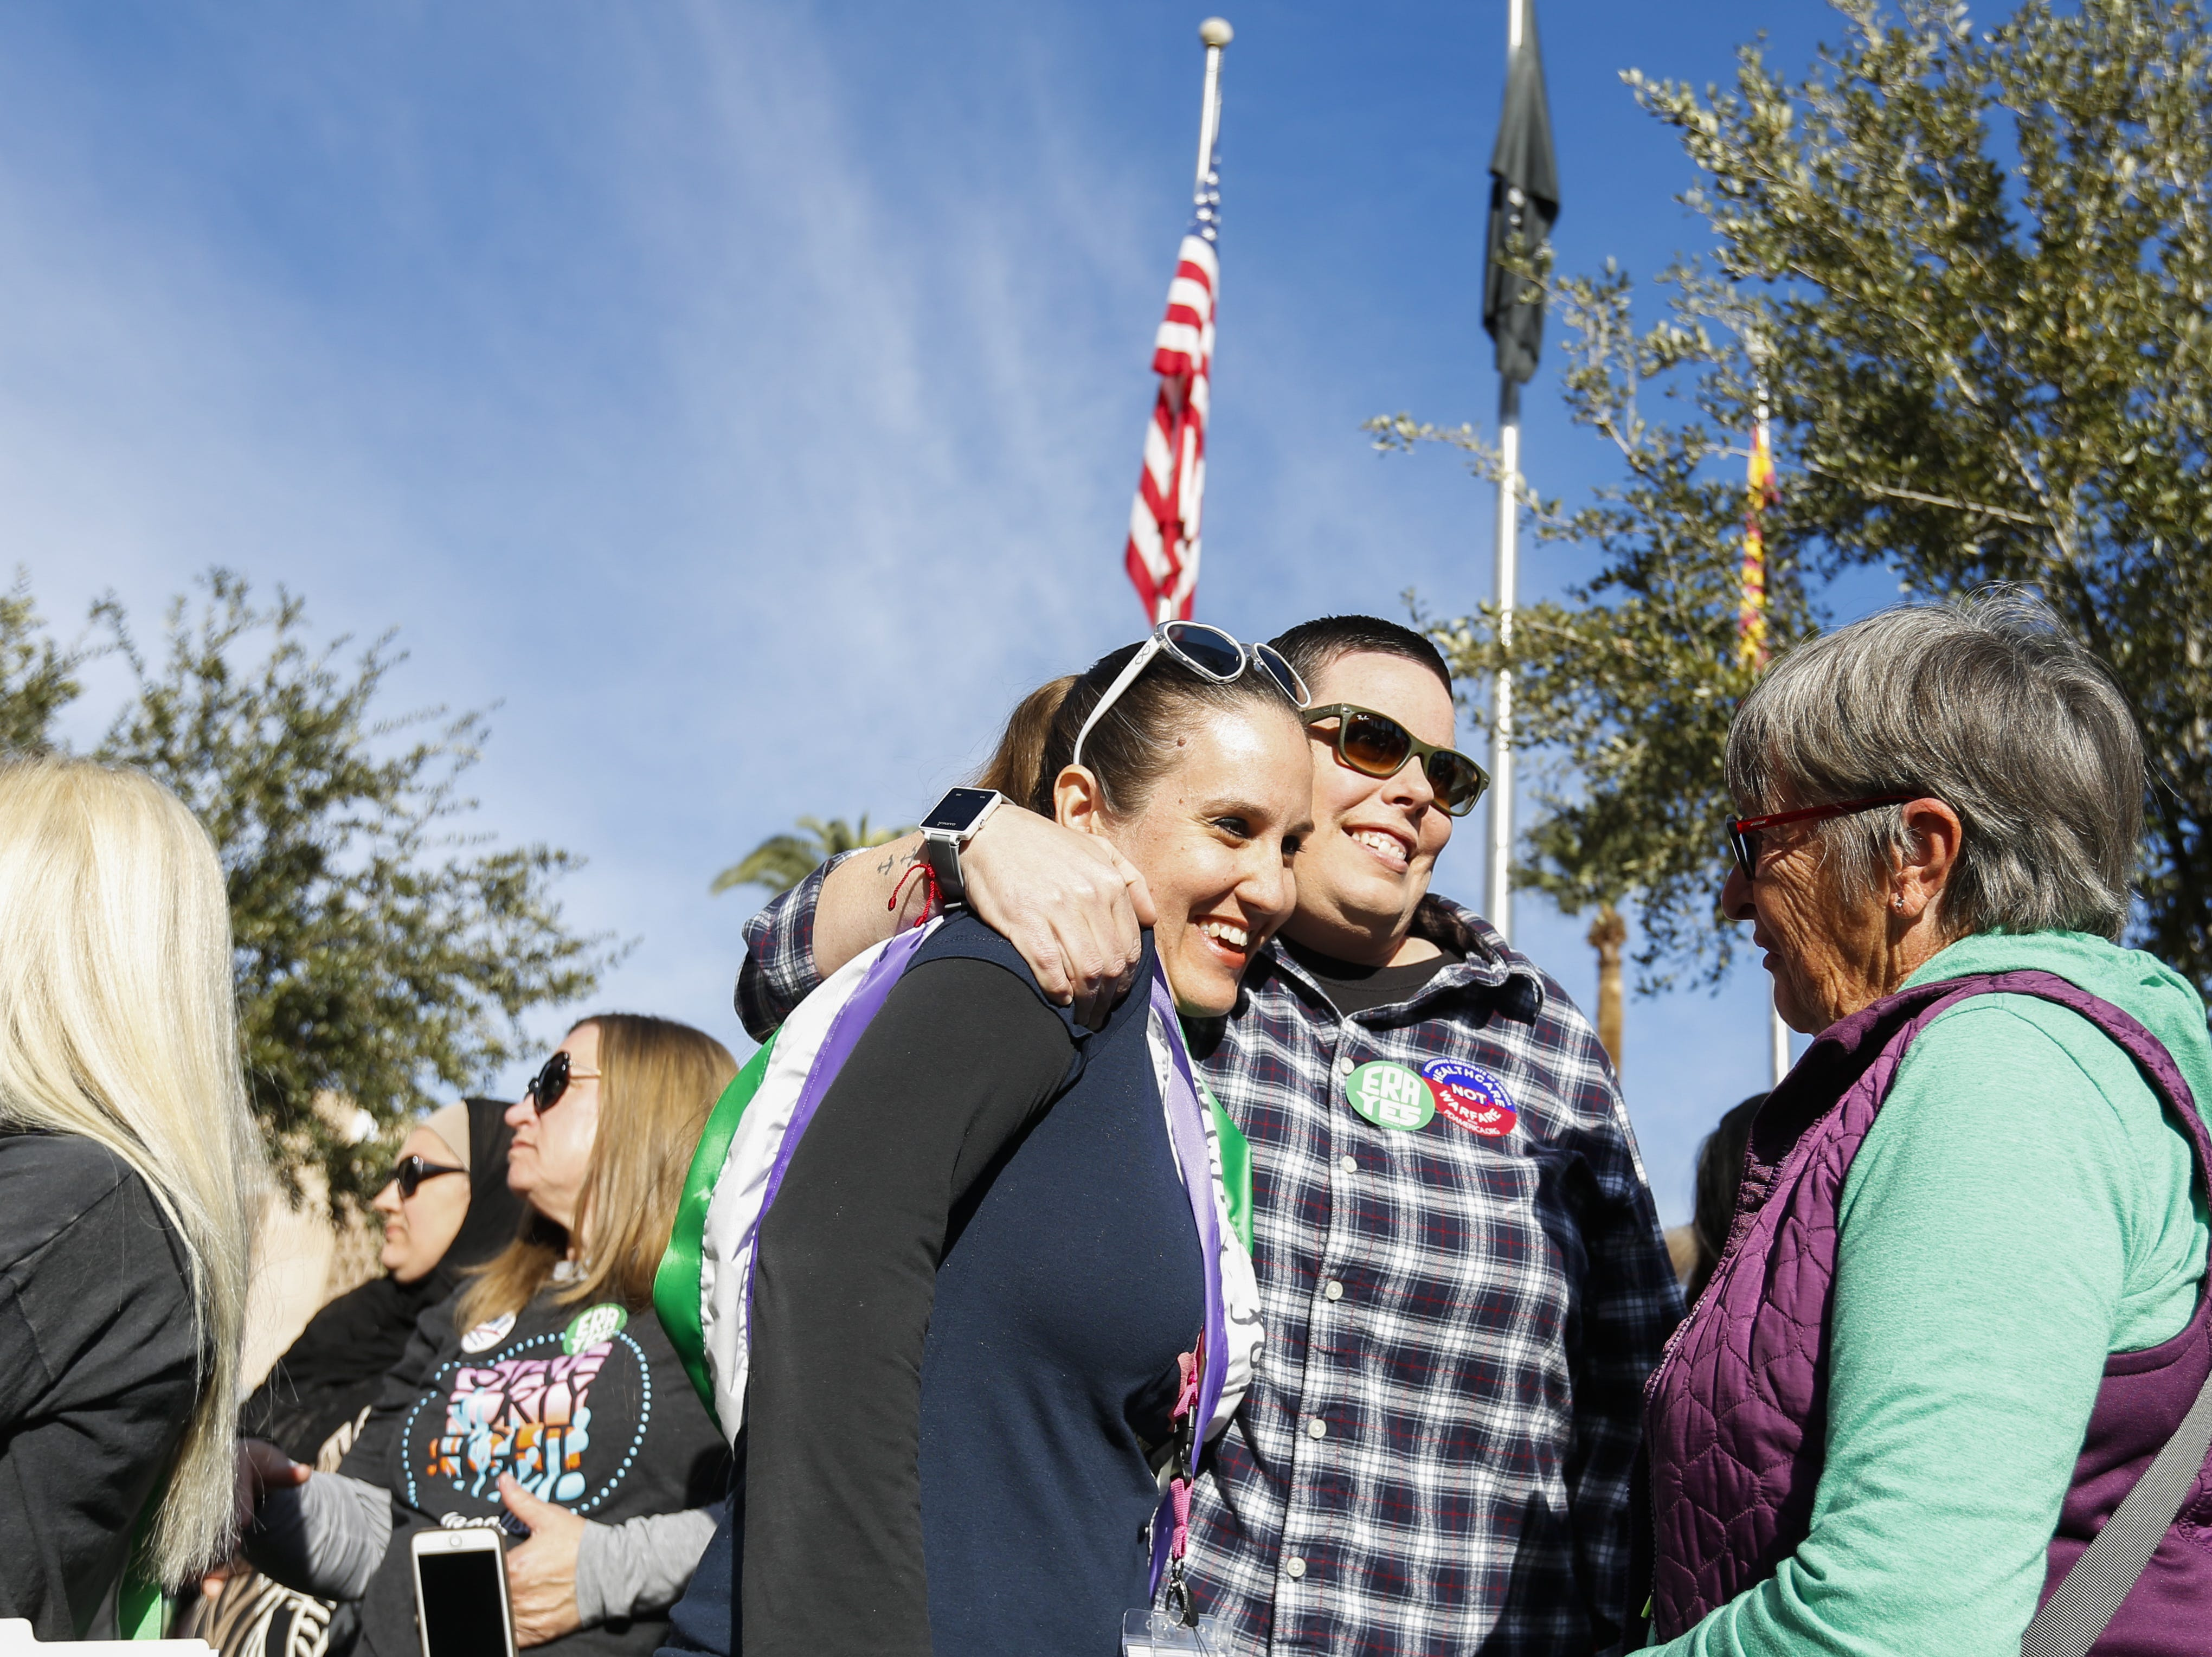 Eva Burch, a lead organizer of the Phoenix Women's March receives a hug after announcing speakers on stage, Jan. 19, 2019.